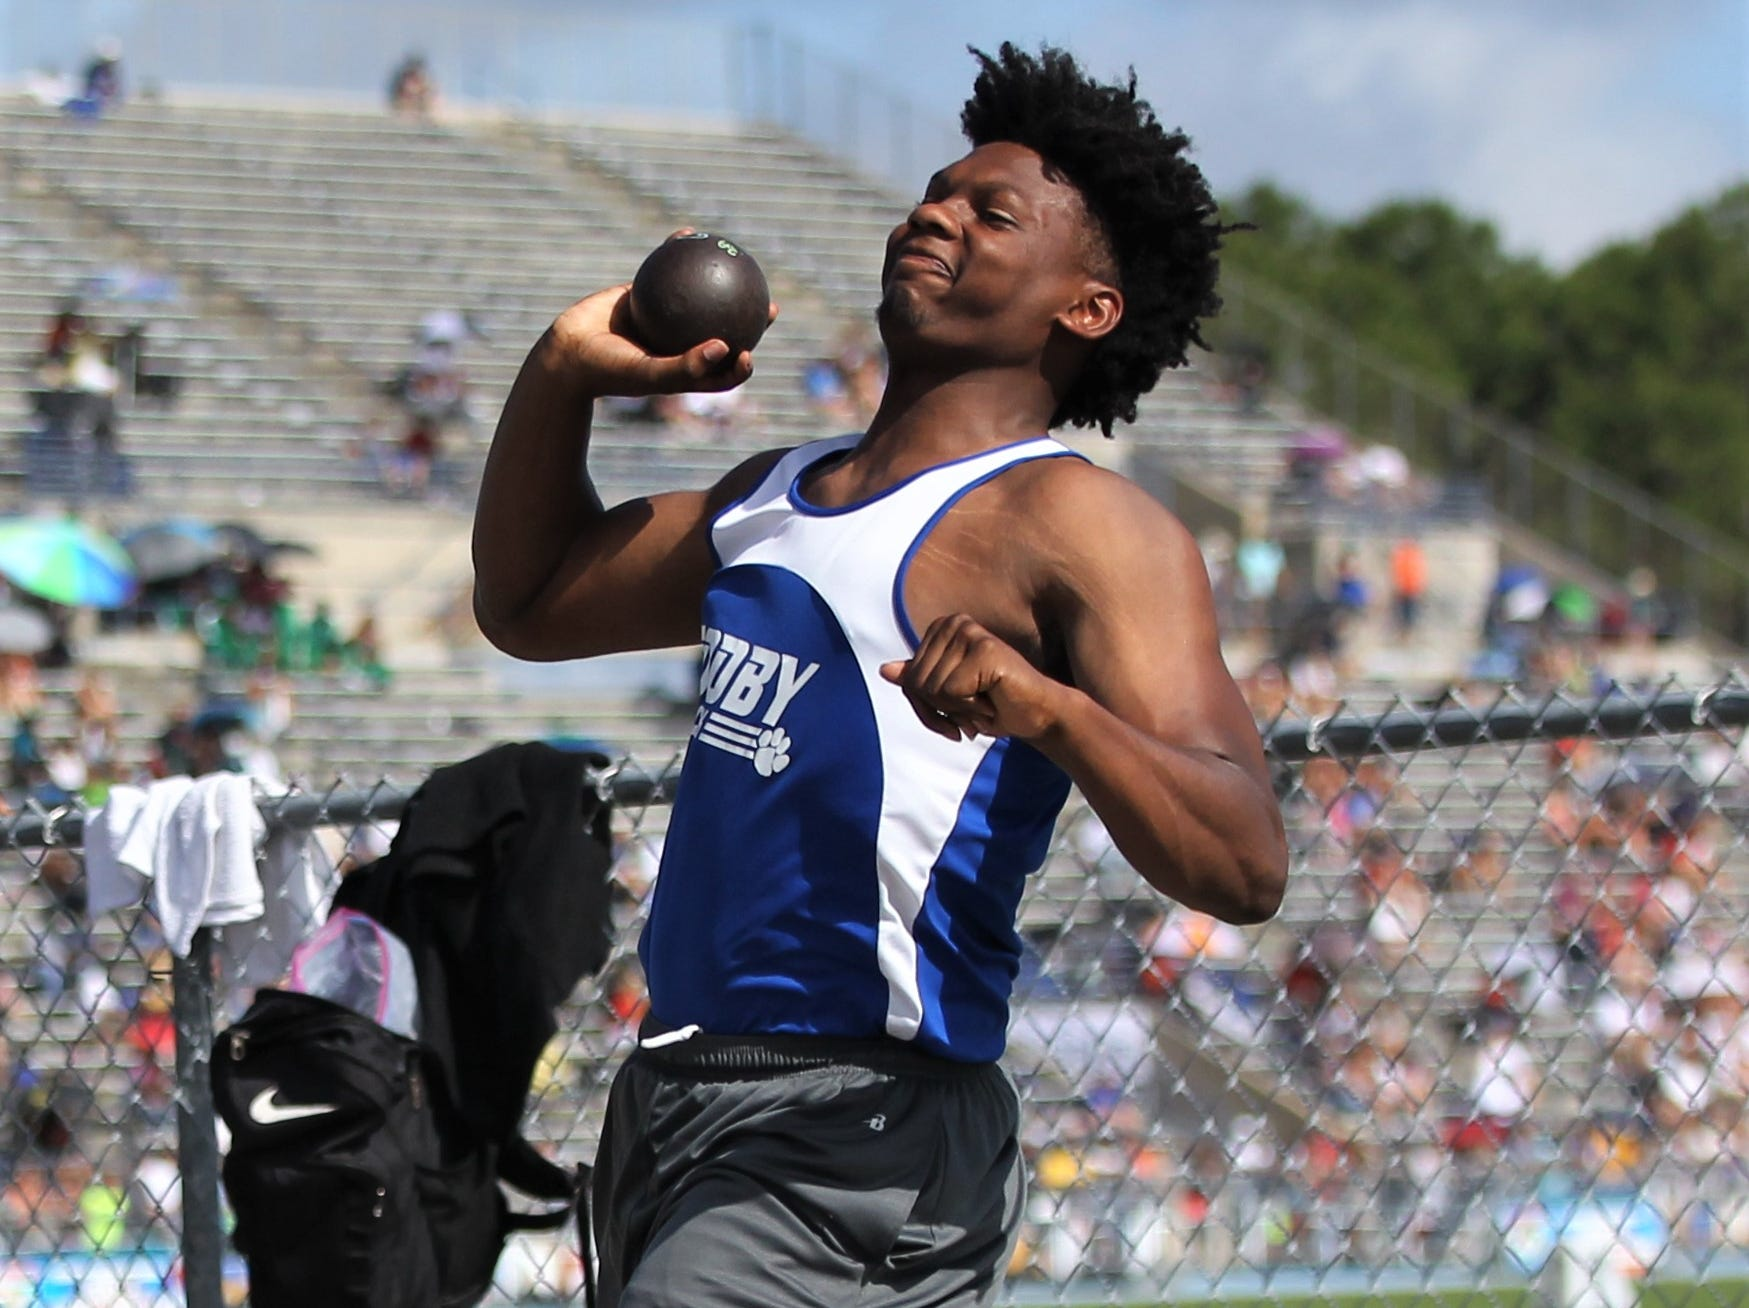 Godby senior Kamari Young throws shot put during the FHSAA Track and Field State Championships at UNF's Hodges Stadium in Jacksonville on May 4, 2019.